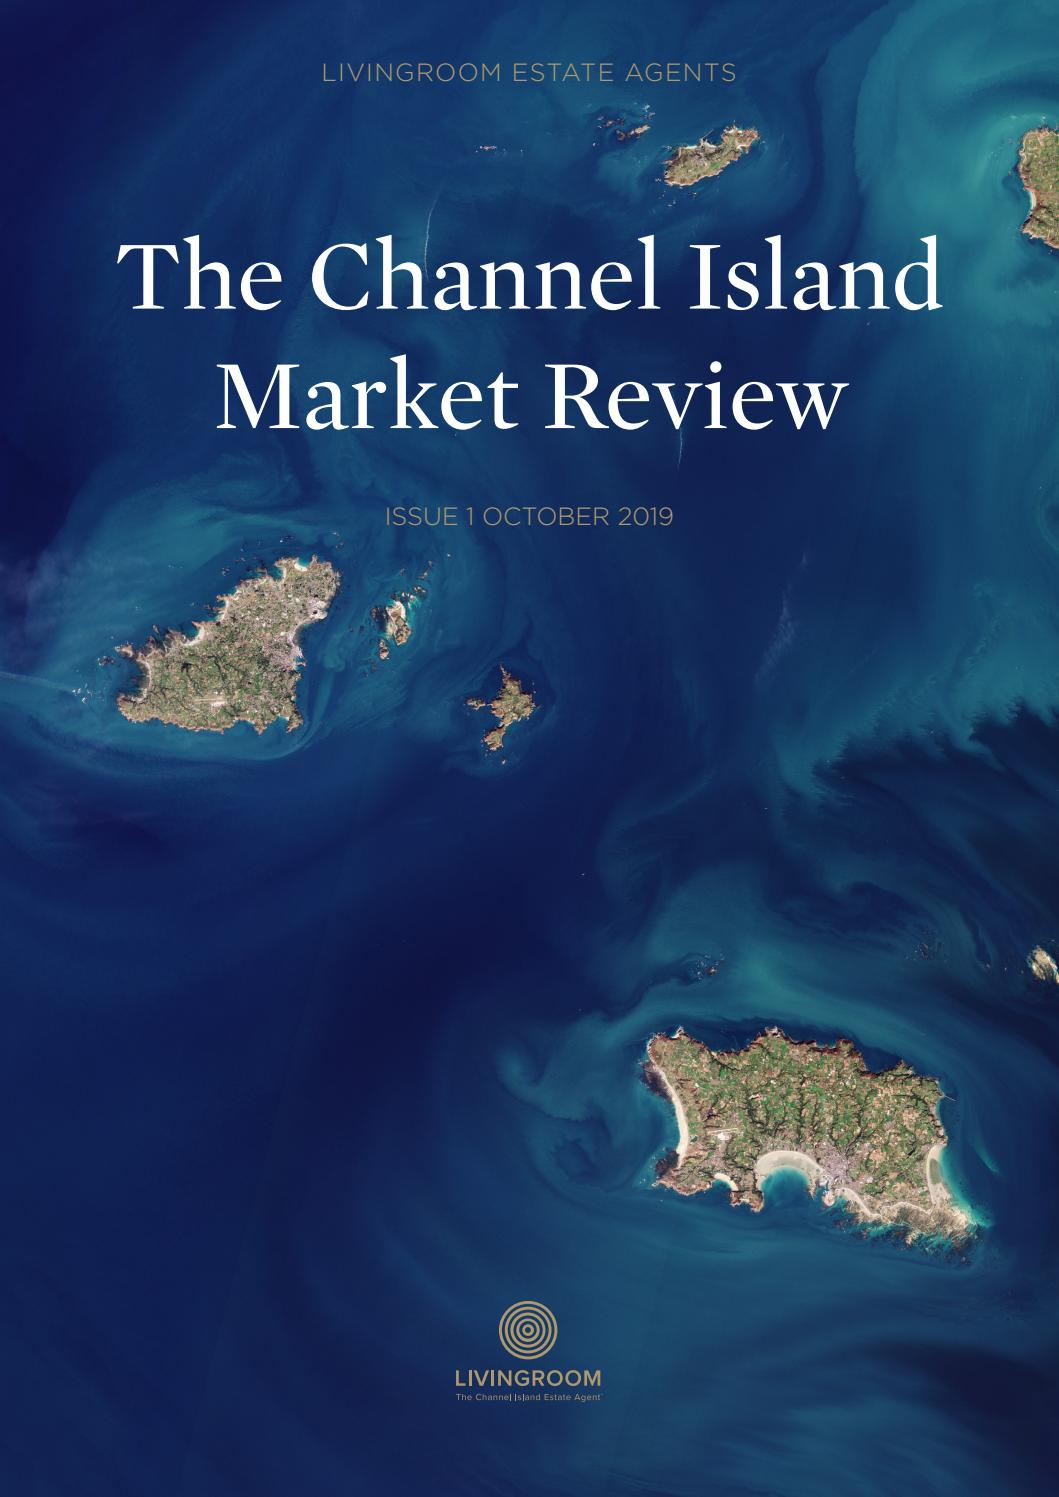 The Channel Island Market Review Issue 1 October 2019 By Livingroom Estate Agents Issuu